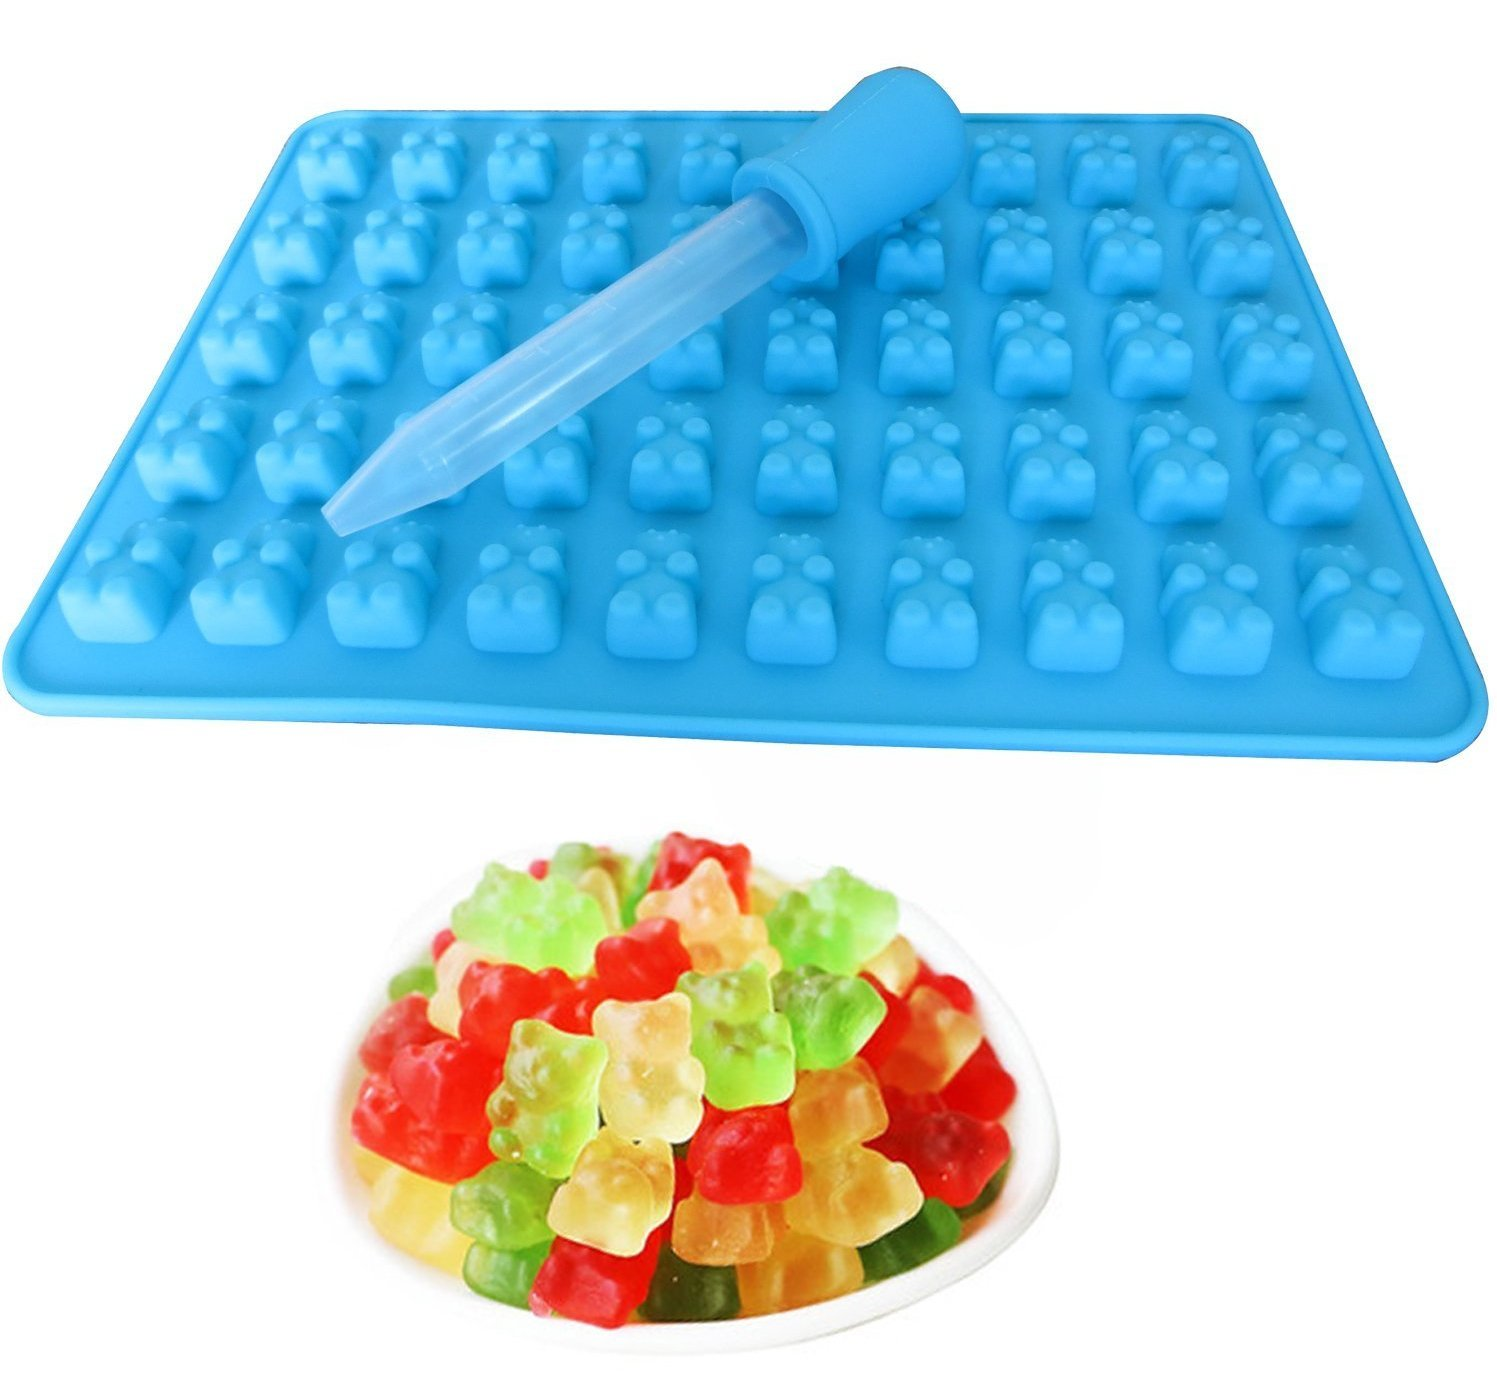 50 Mini Silicone Gummy Bear Sweet Moulds - 2 Pack + 2 droppers Awesome UK